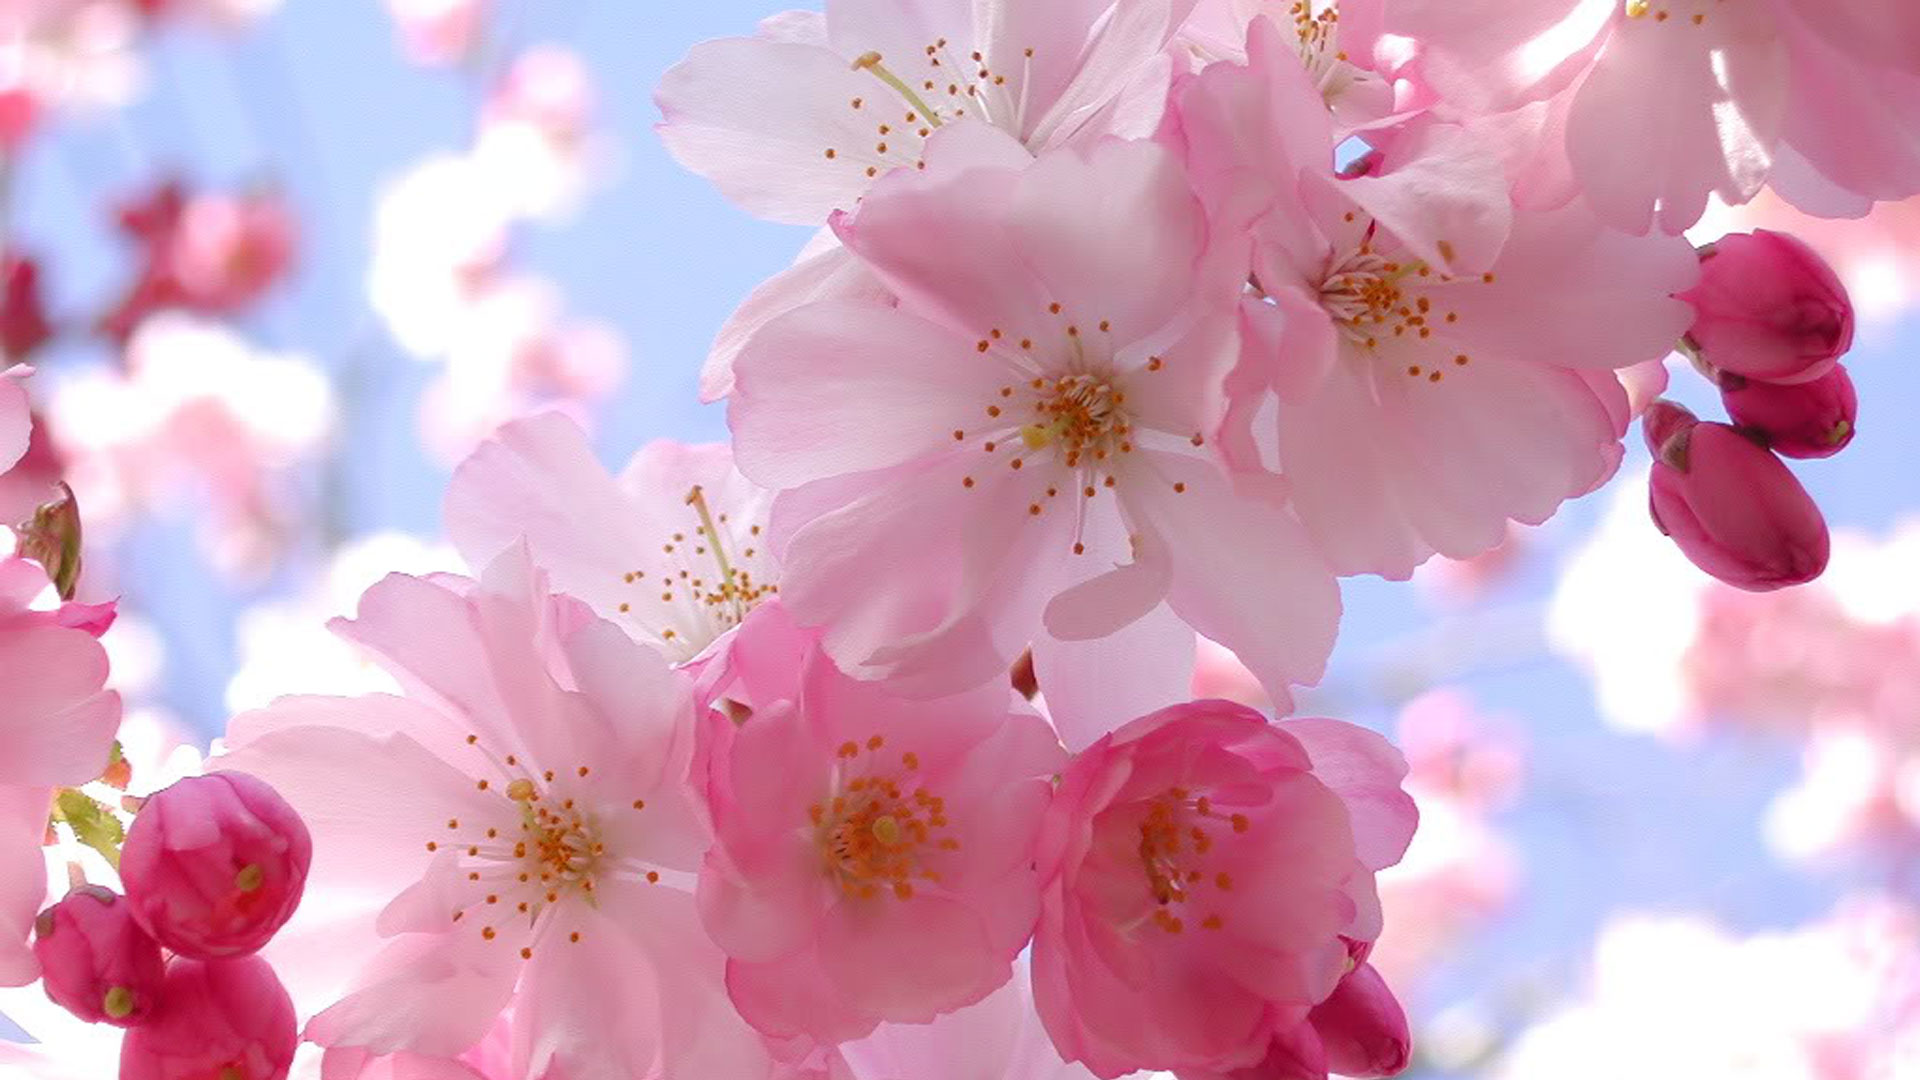 Blooming-Pink-Cherry-Blossom-Pink-Color-Fanpop-wallpaper-wp3403377